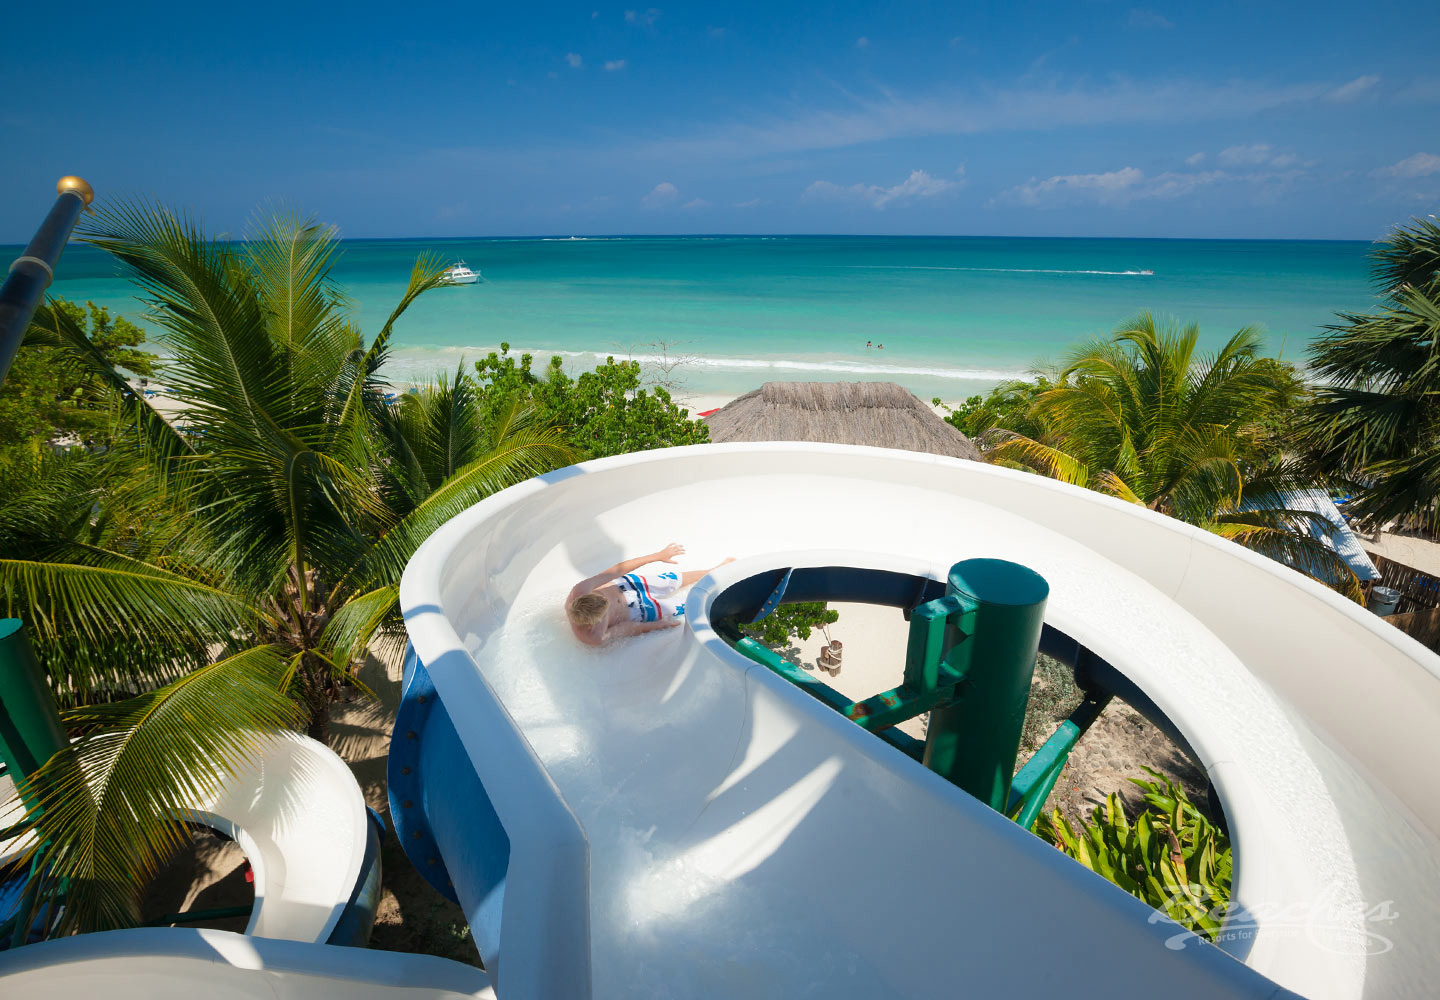 Travel Agency All-Inclusive Resort Beaches Negril 051